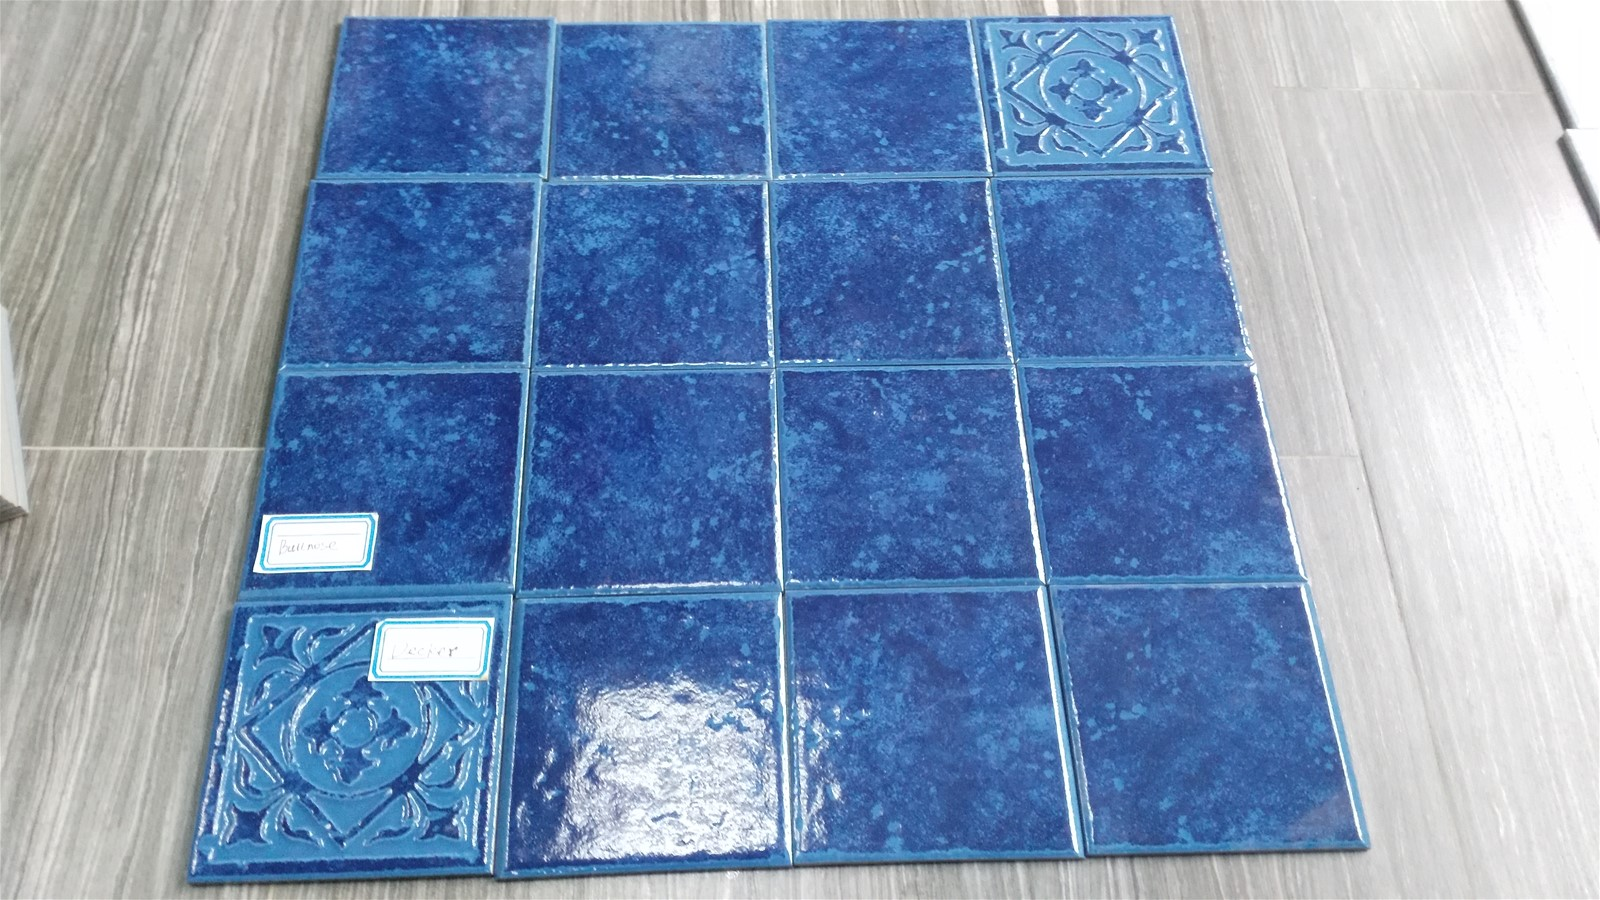 Swimming Pool Porcelain Tile - 6x6